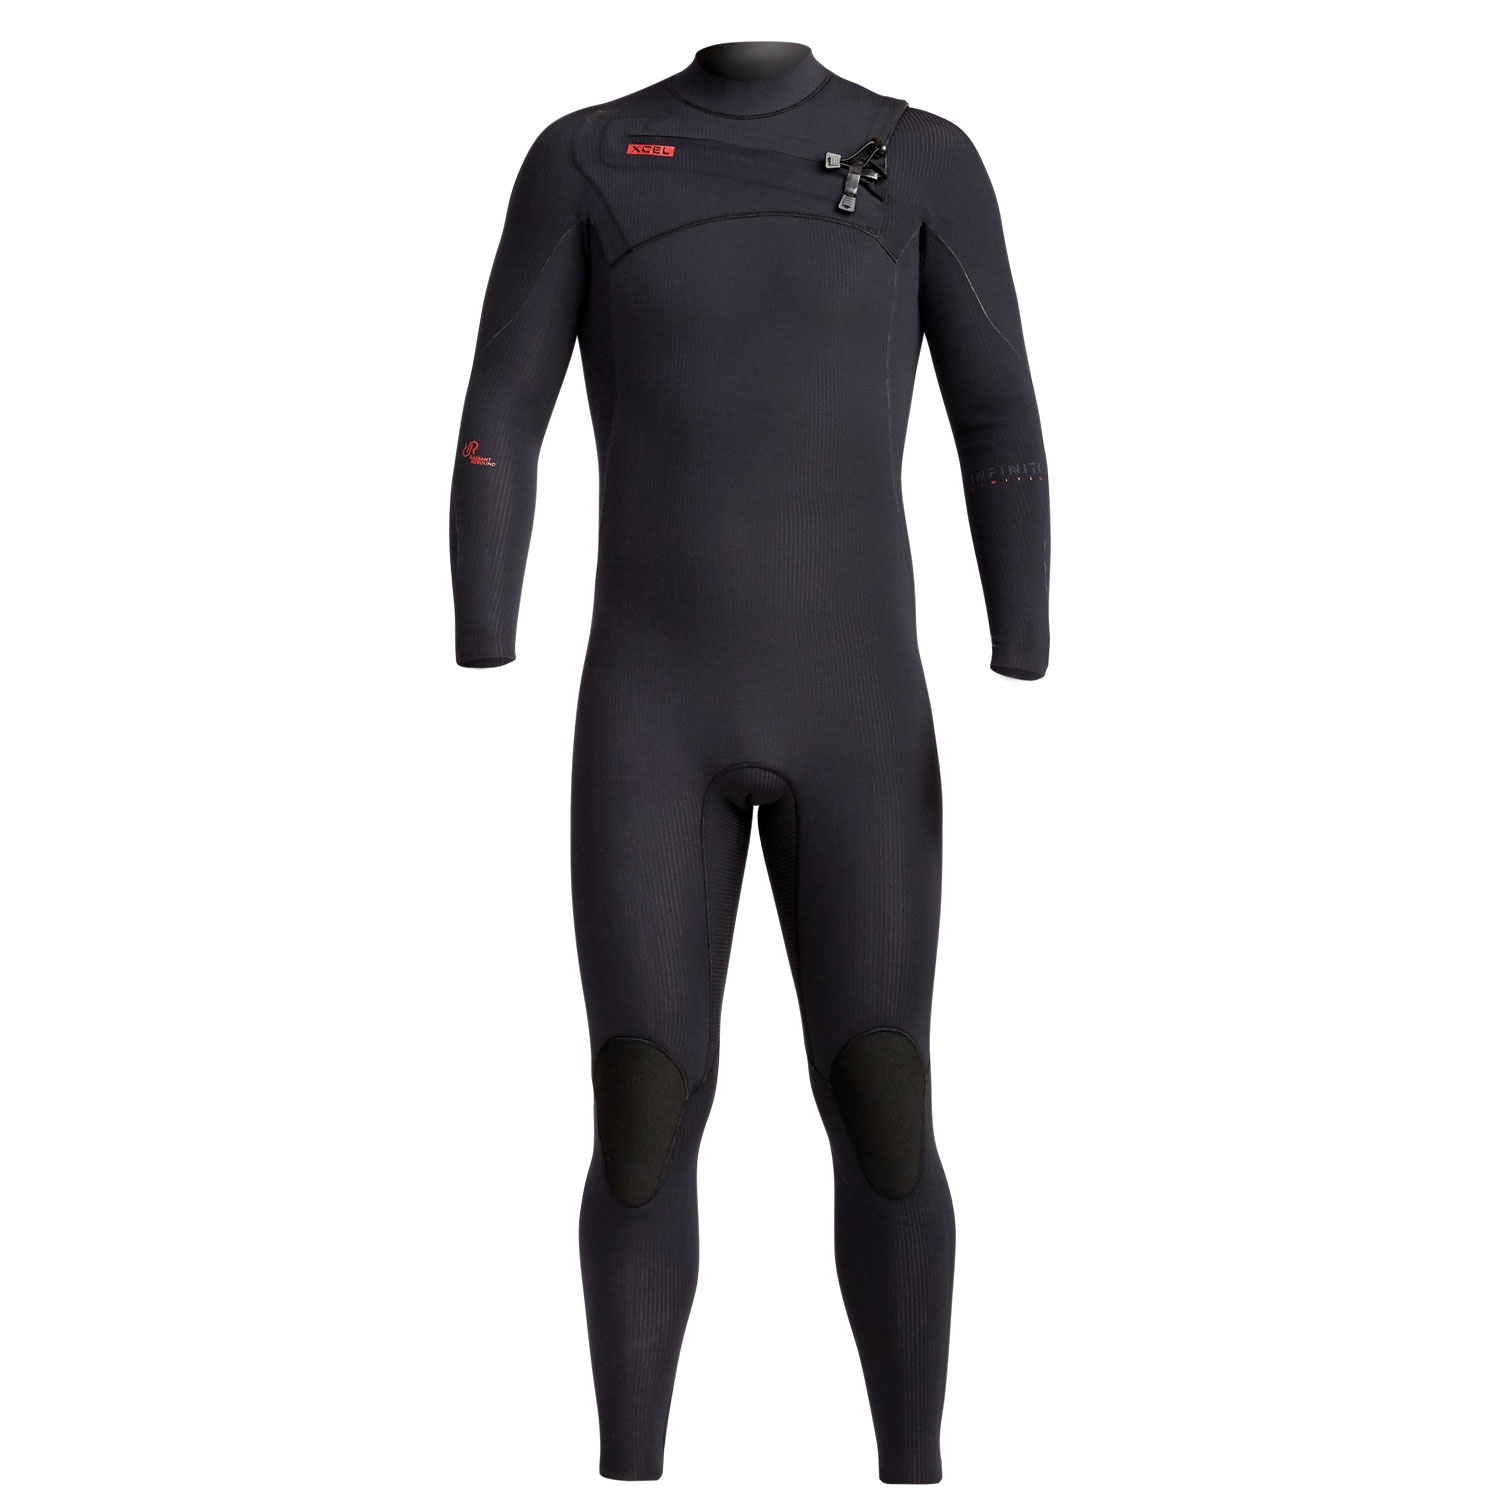 5/4 Infiniti LTD Edition Wetsuit Black 2019